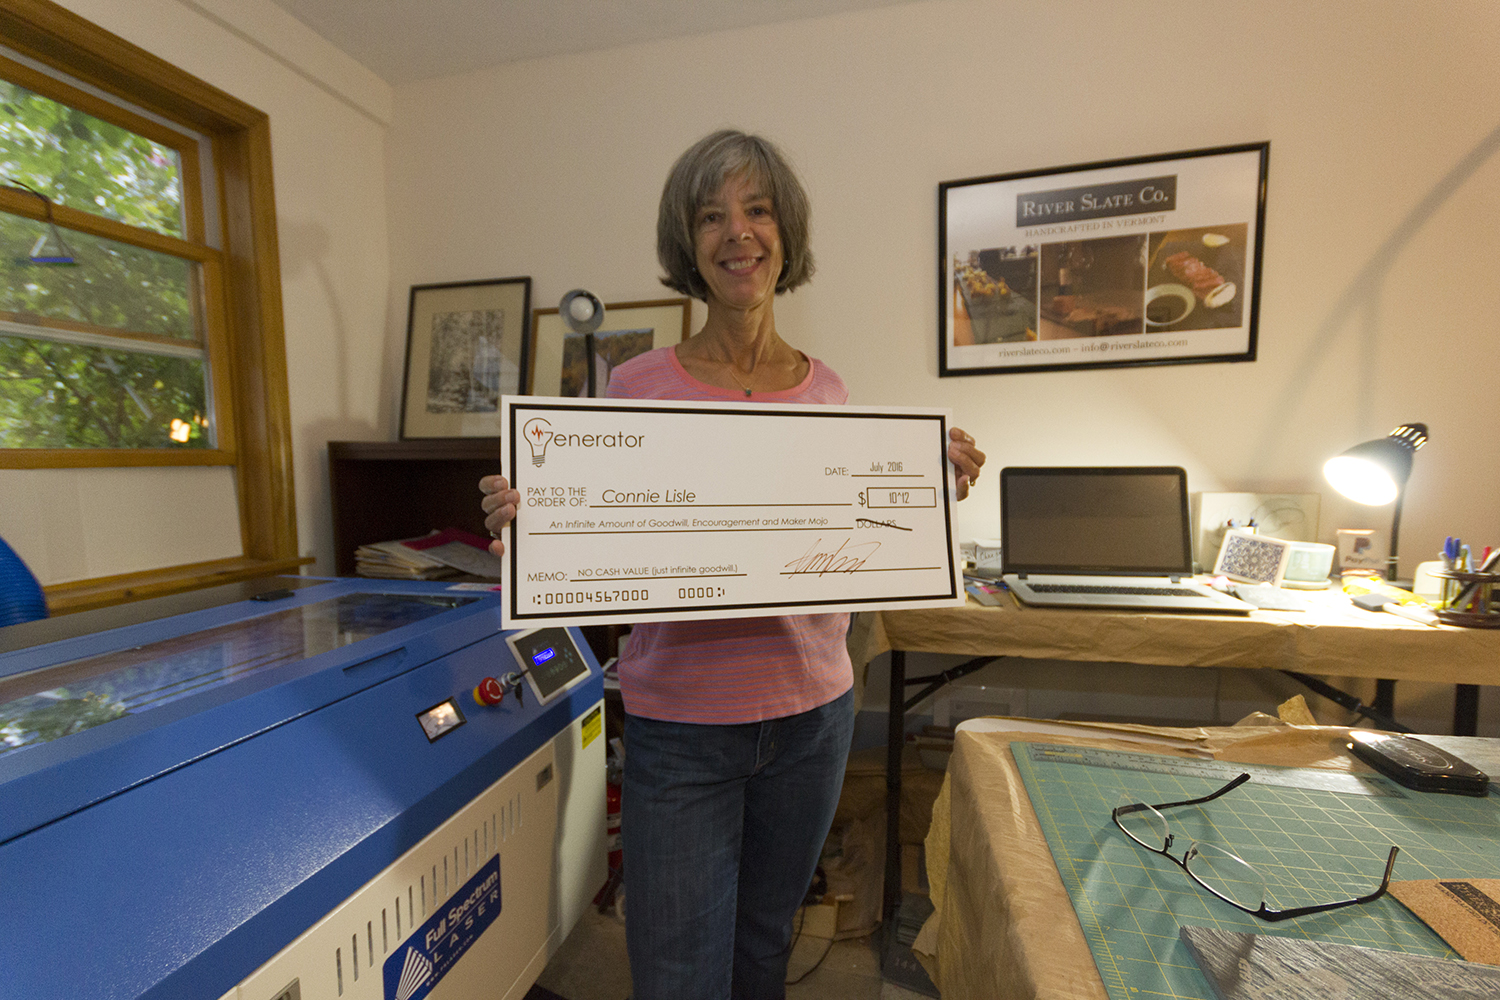 A big check of good wishes and encouragement from Generator, a Maker Space in Burlington, VT